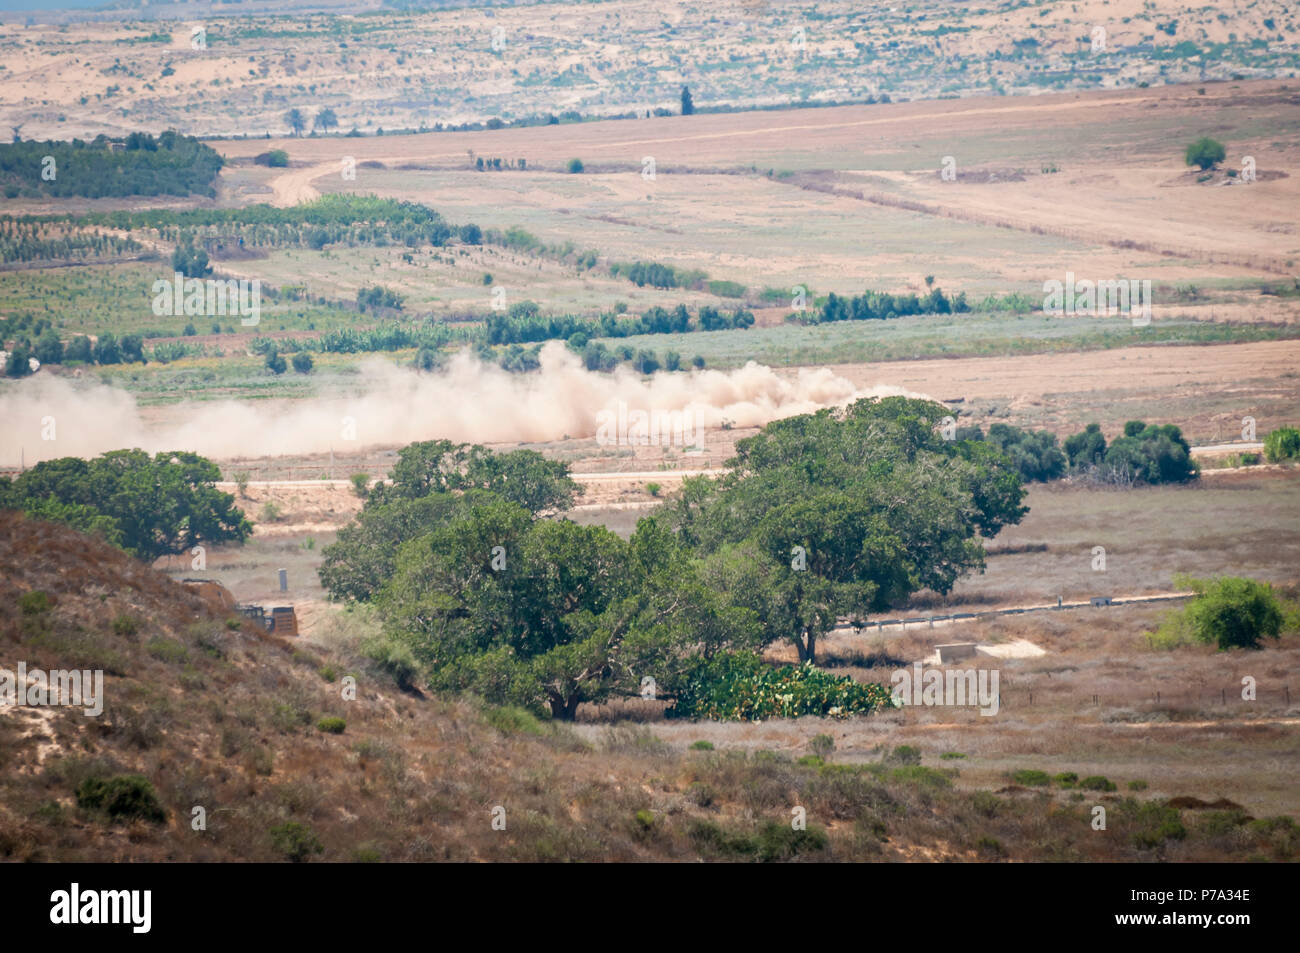 Israeli army destroys Hamas military tunnel stretching to the territory of Israel during the military operation Protective Edge. Erez, July 2014. Stock Photo